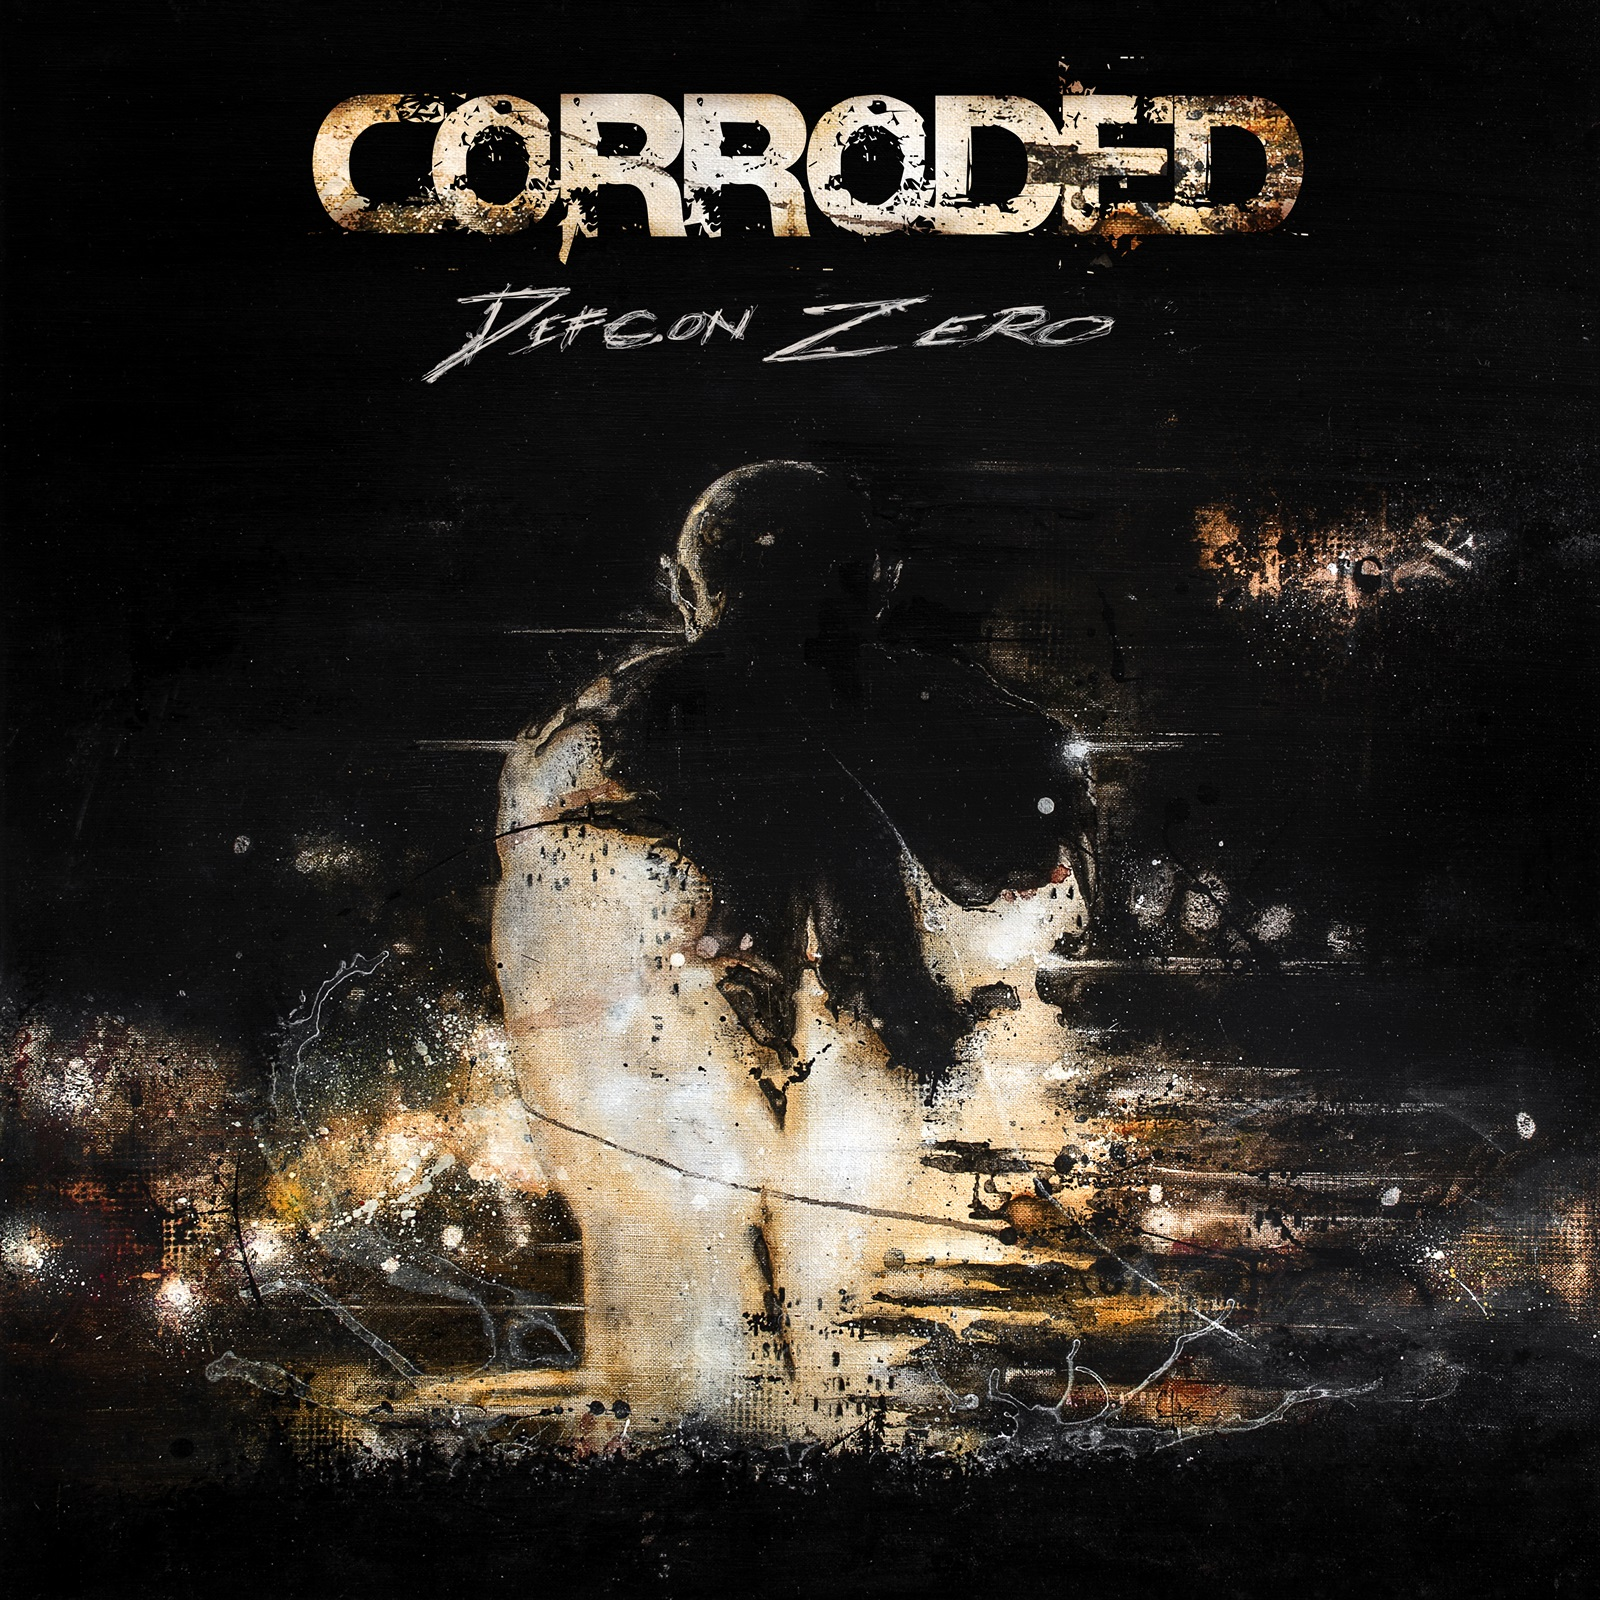 Corroded_DefconZero_cover.jpeg